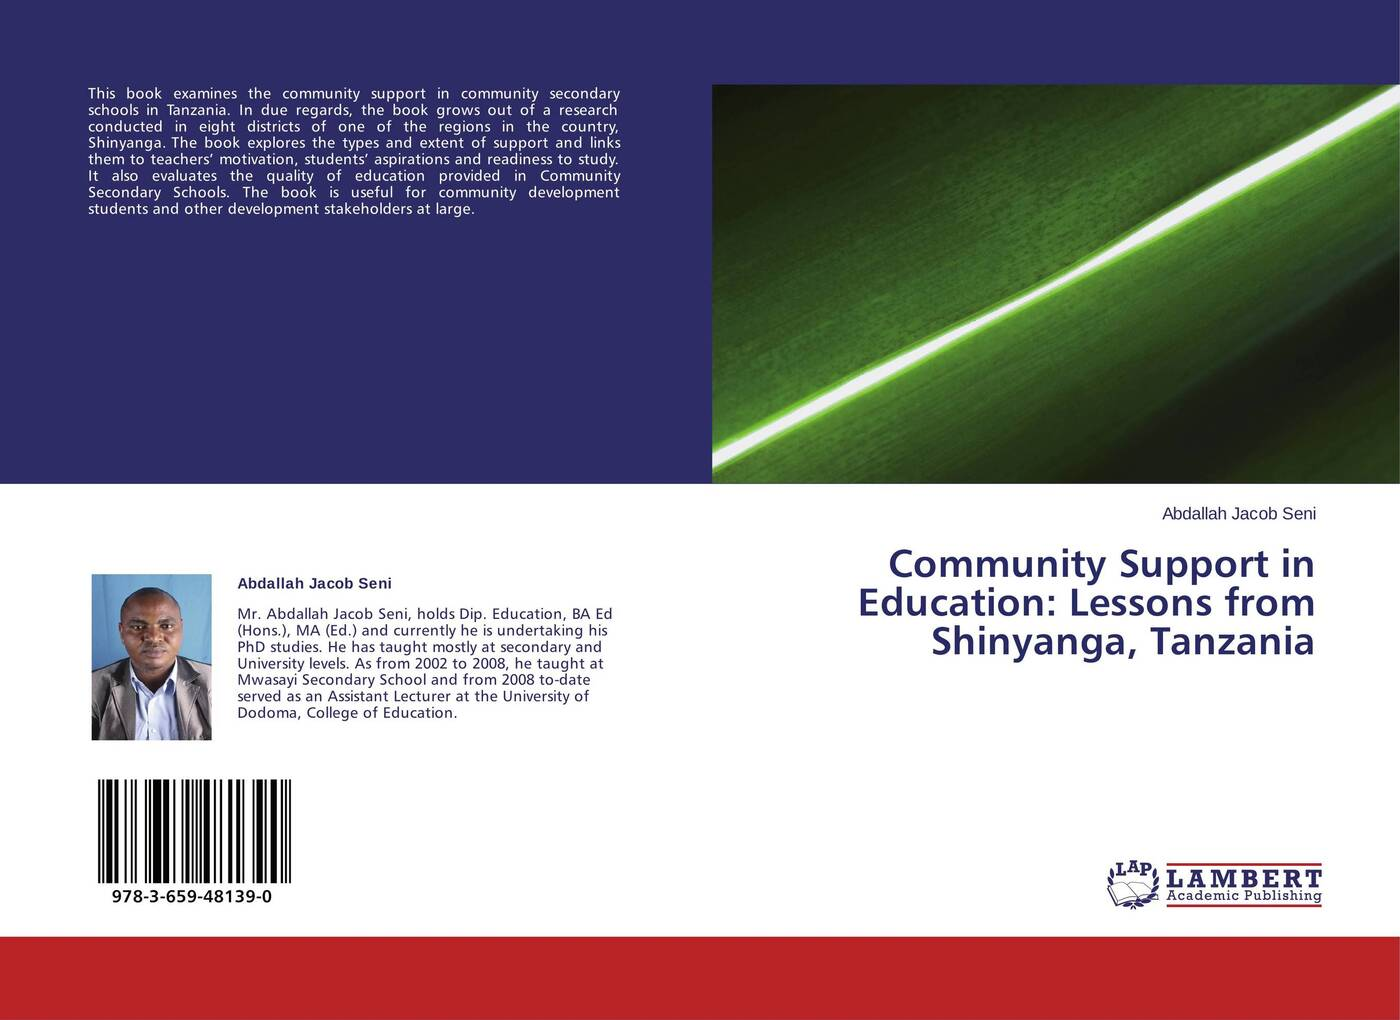 Abdallah Jacob Seni Community Support in Education: Lessons from Shinyanga, Tanzania mumper william norris a text book in physics for secondary schools